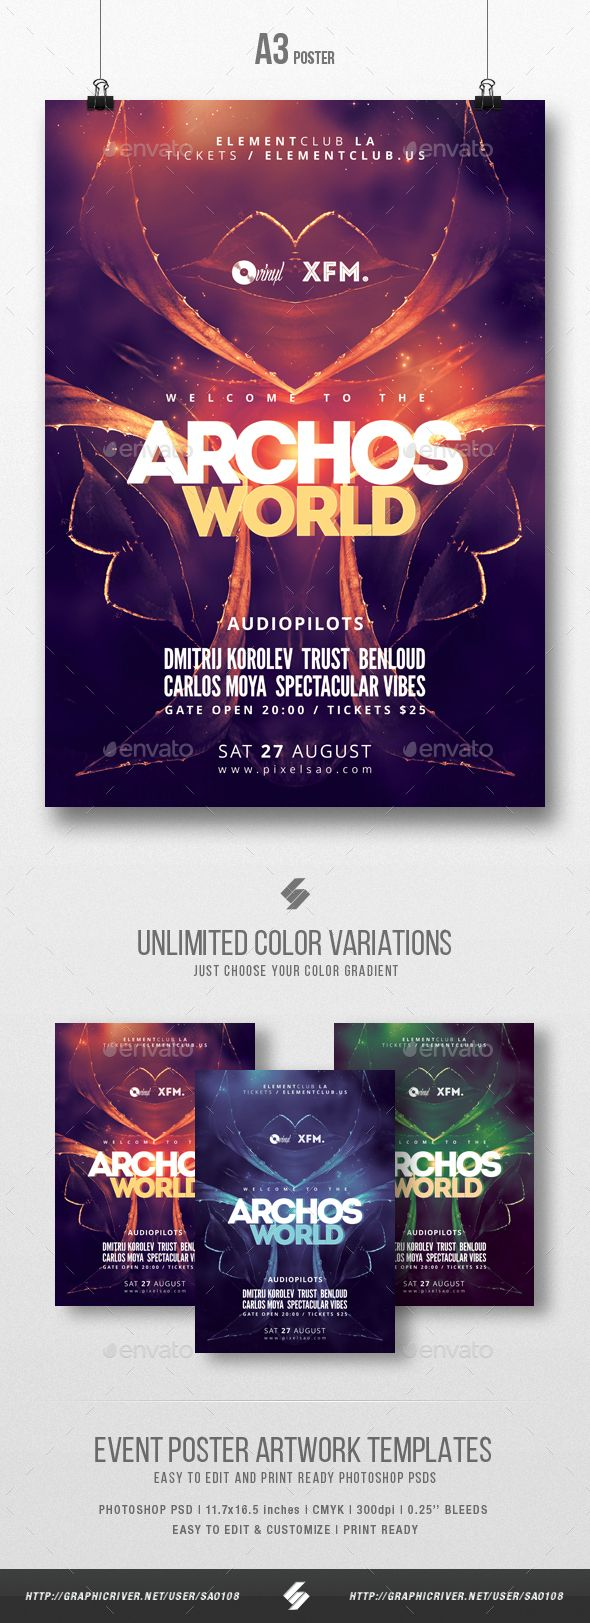 Archos World Trance Party Flyer / Poster Template A3 — Photoshop PSD ...